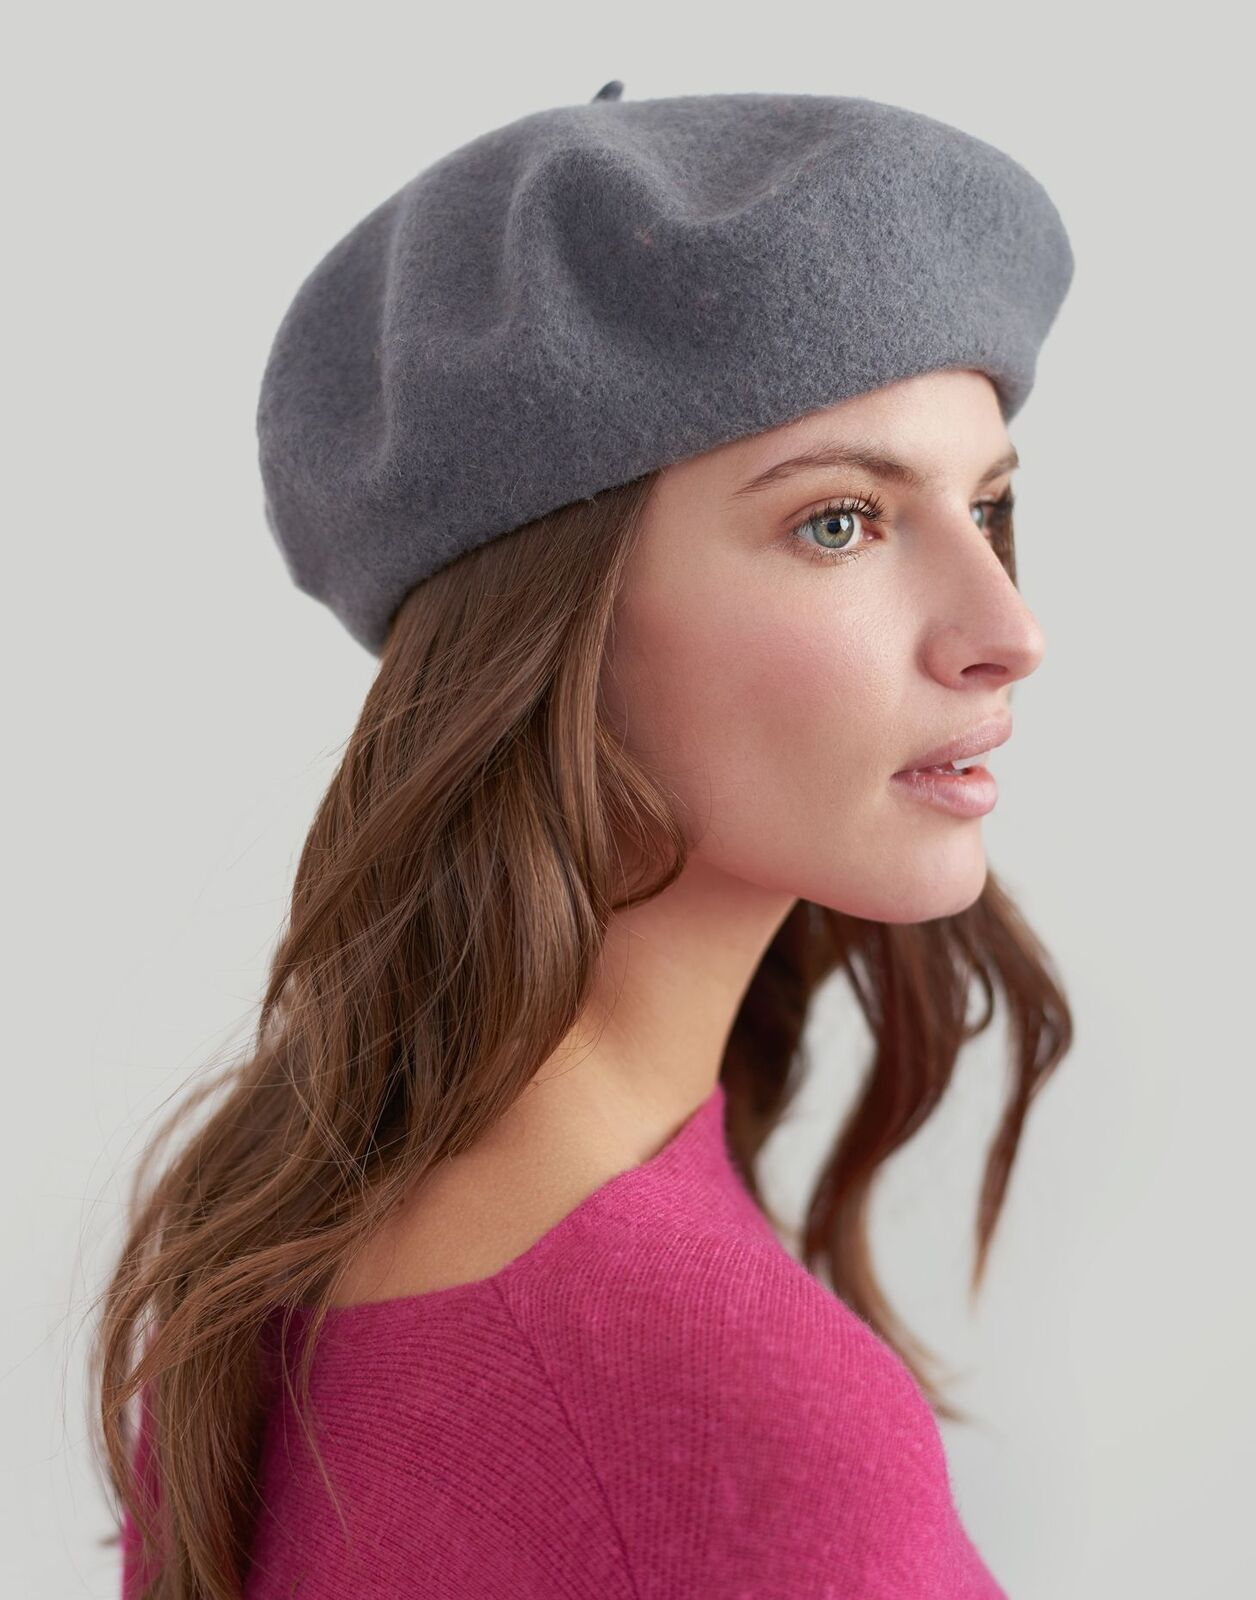 Joules Womens Wilsford Felted Beret in CHARCOAL in One Size £3.95 Delivered